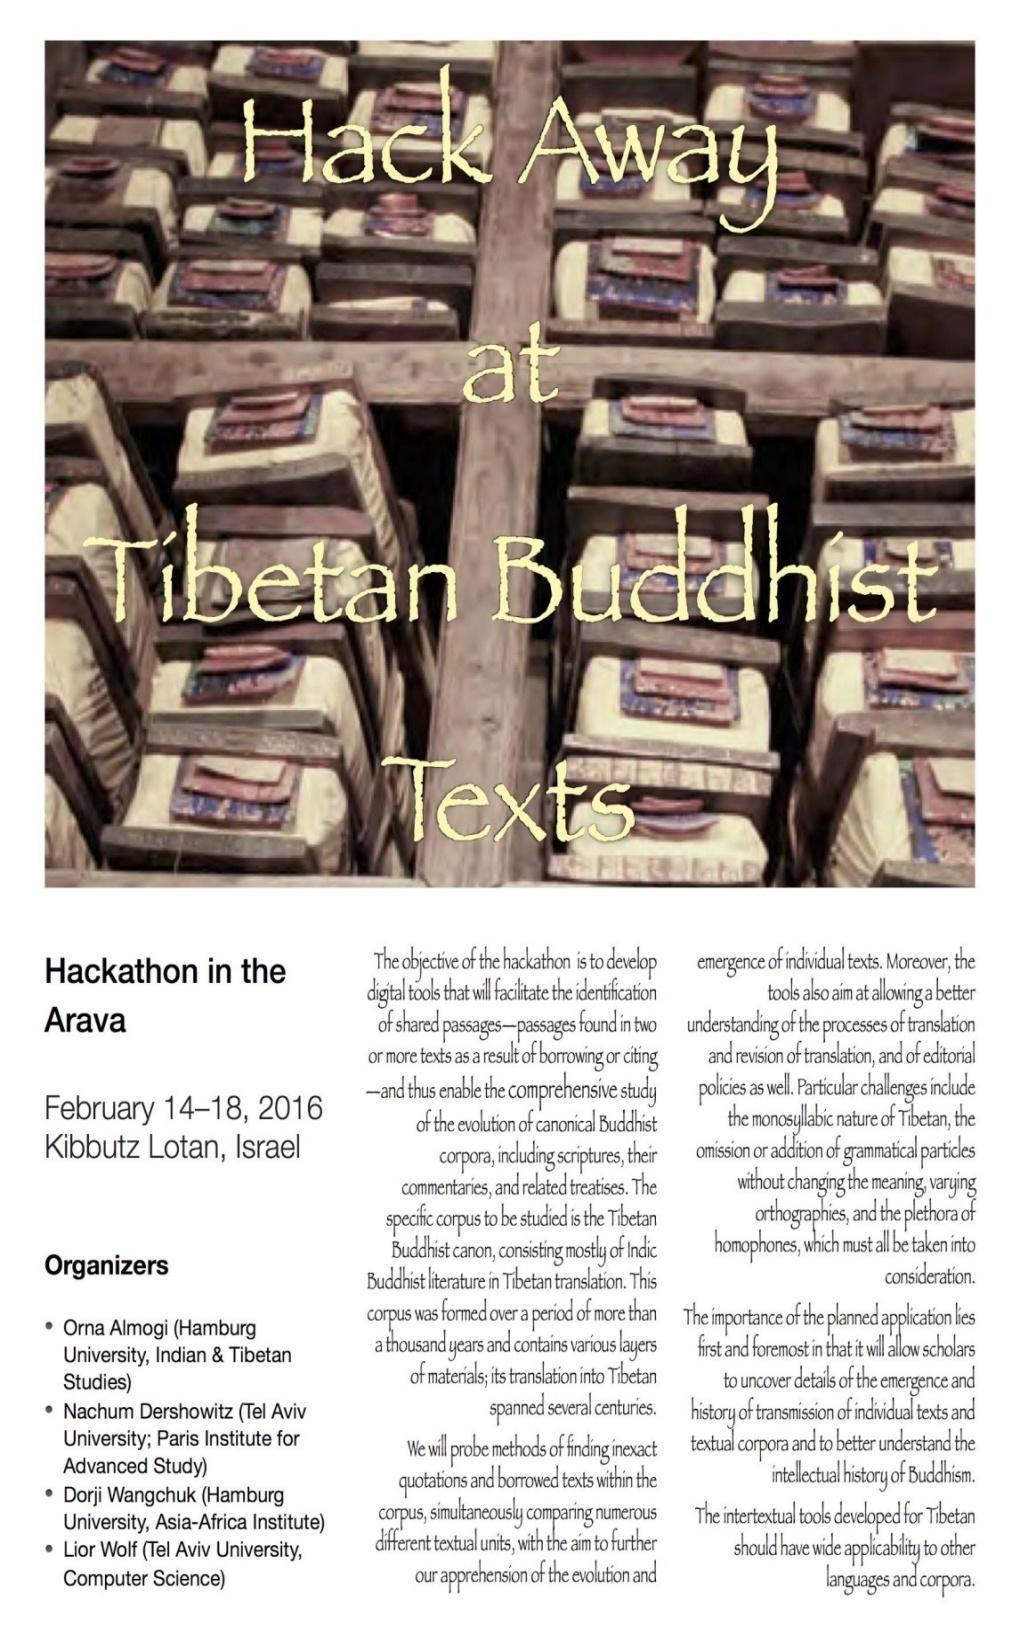 Figure 1. Poster announcement of the hackathon. IV CONCLUSION The intense hackathon format proved to be quite exhilarating.